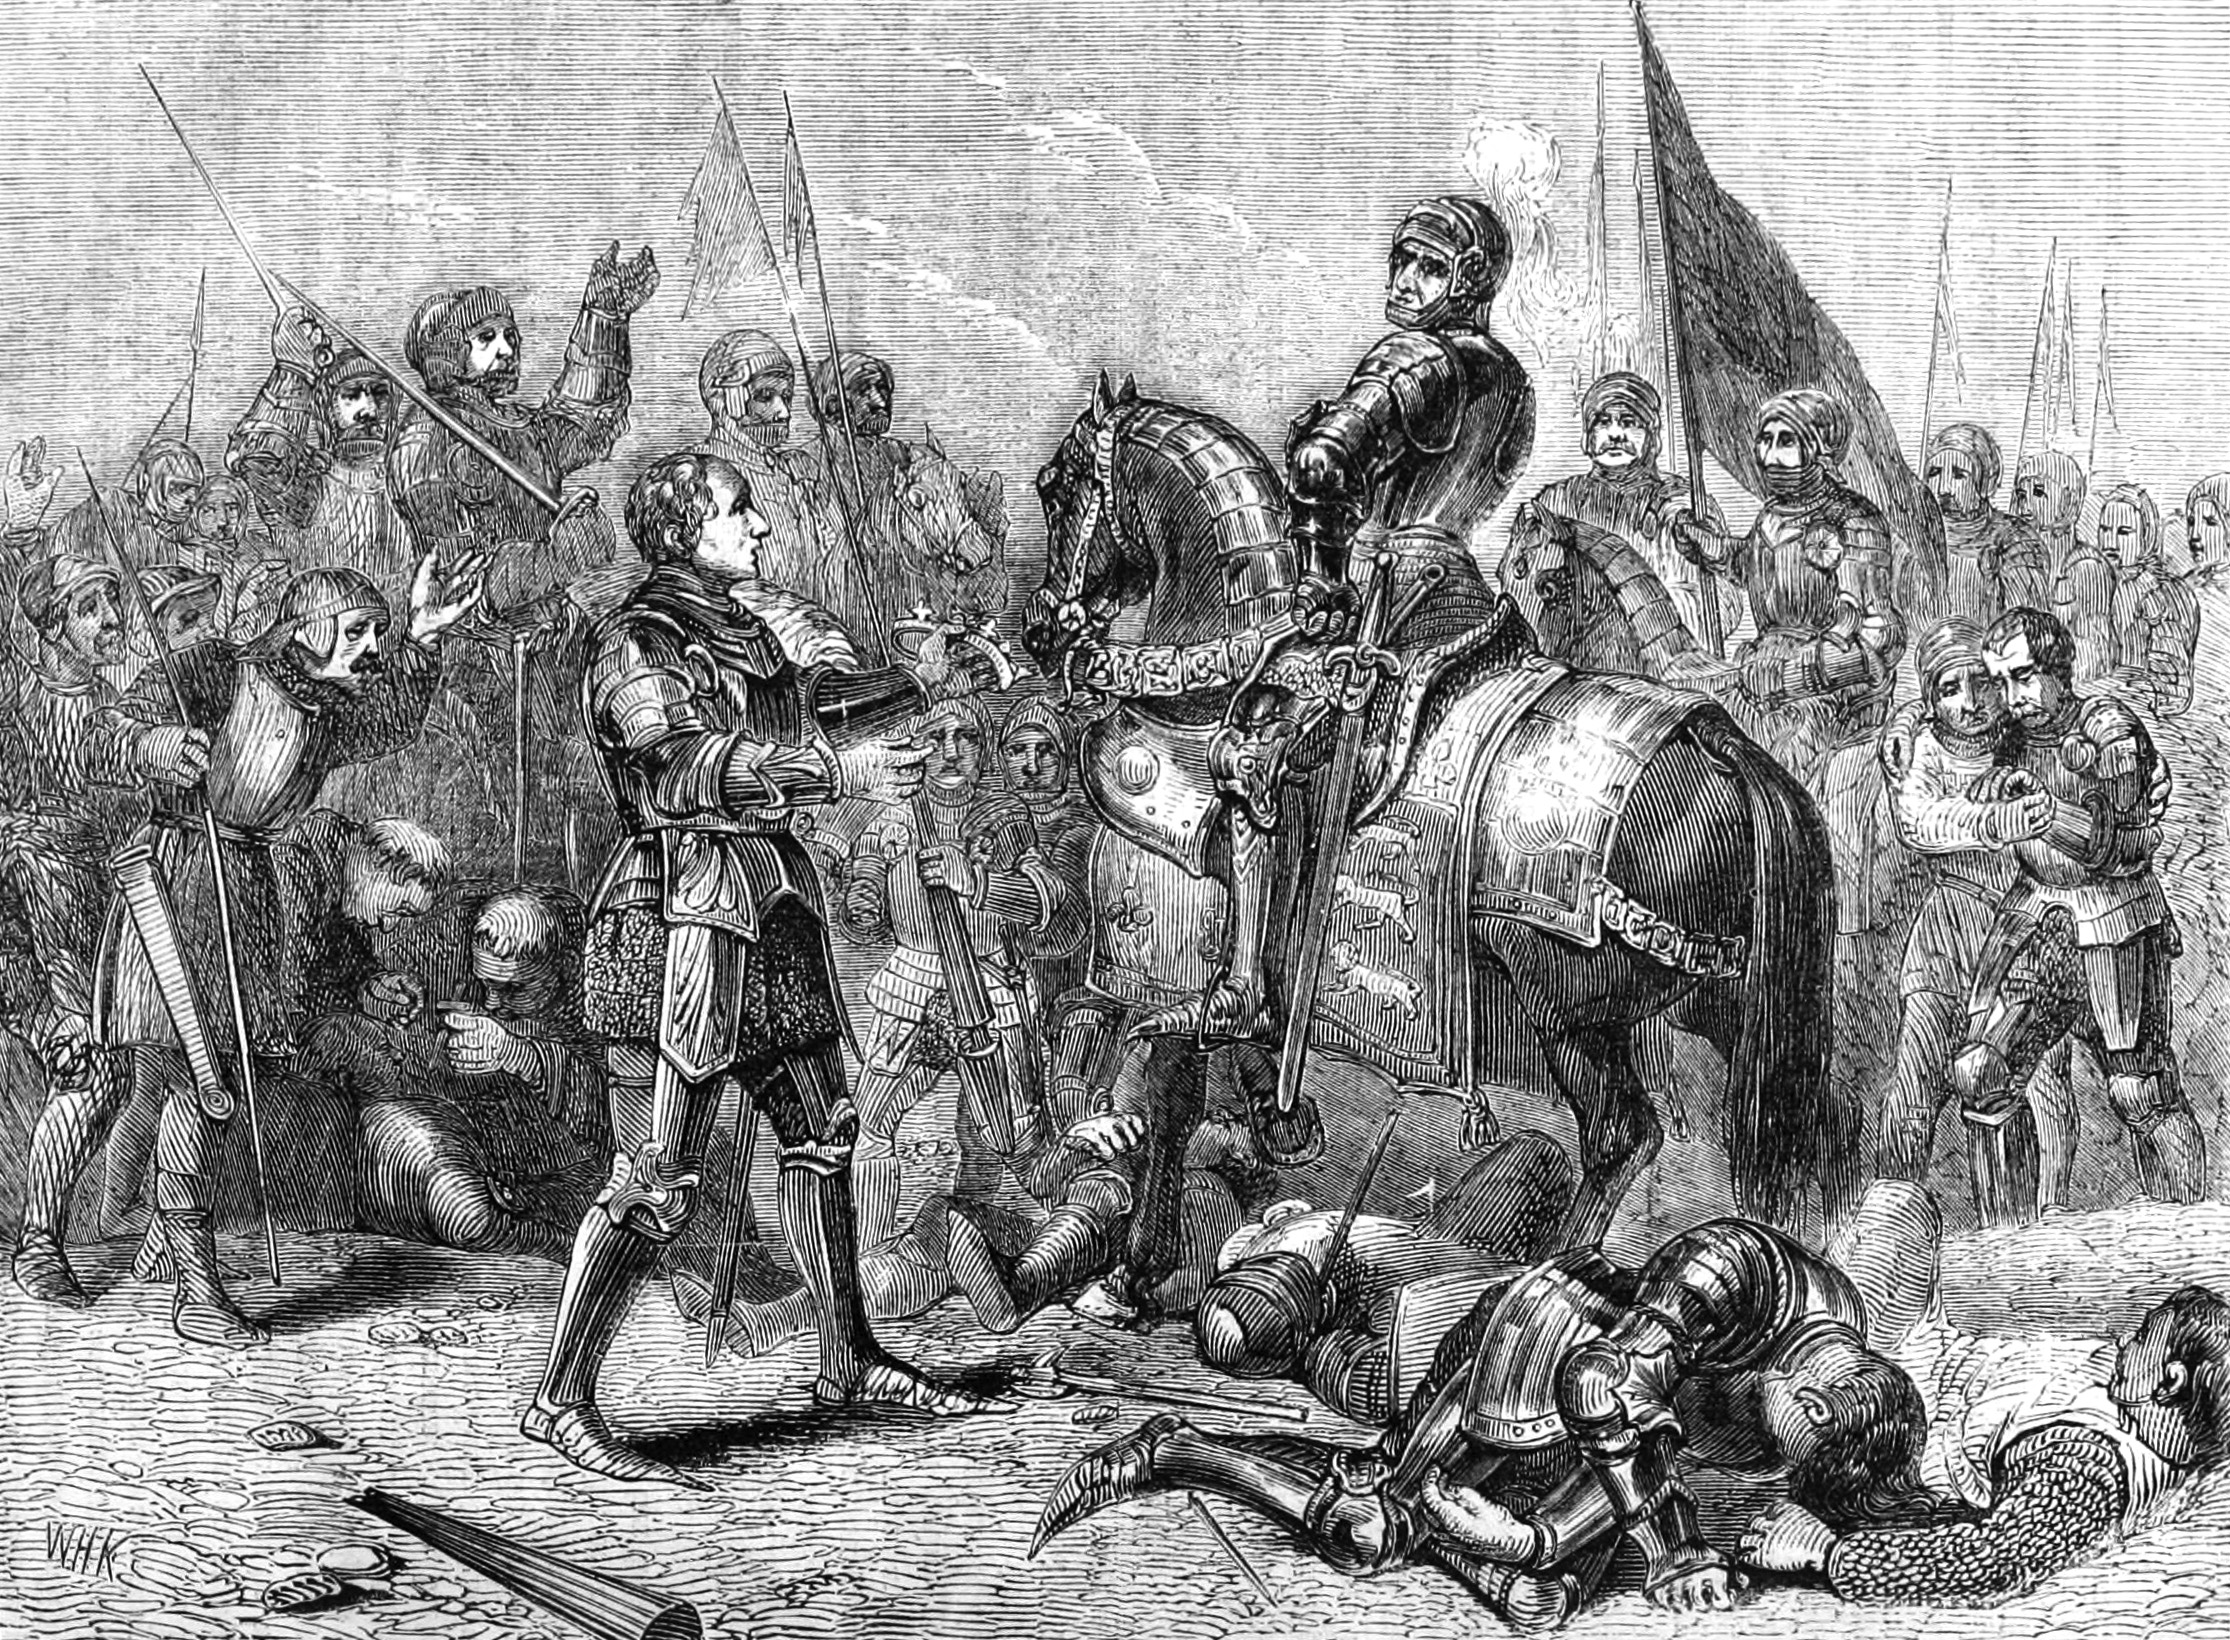 richard and the battle of bosworth The guardian - back to home make a  richard iii died in battle after losing helmet, new research shows  perished at the battle of bosworth in 1485 it was the last significant battle of the.